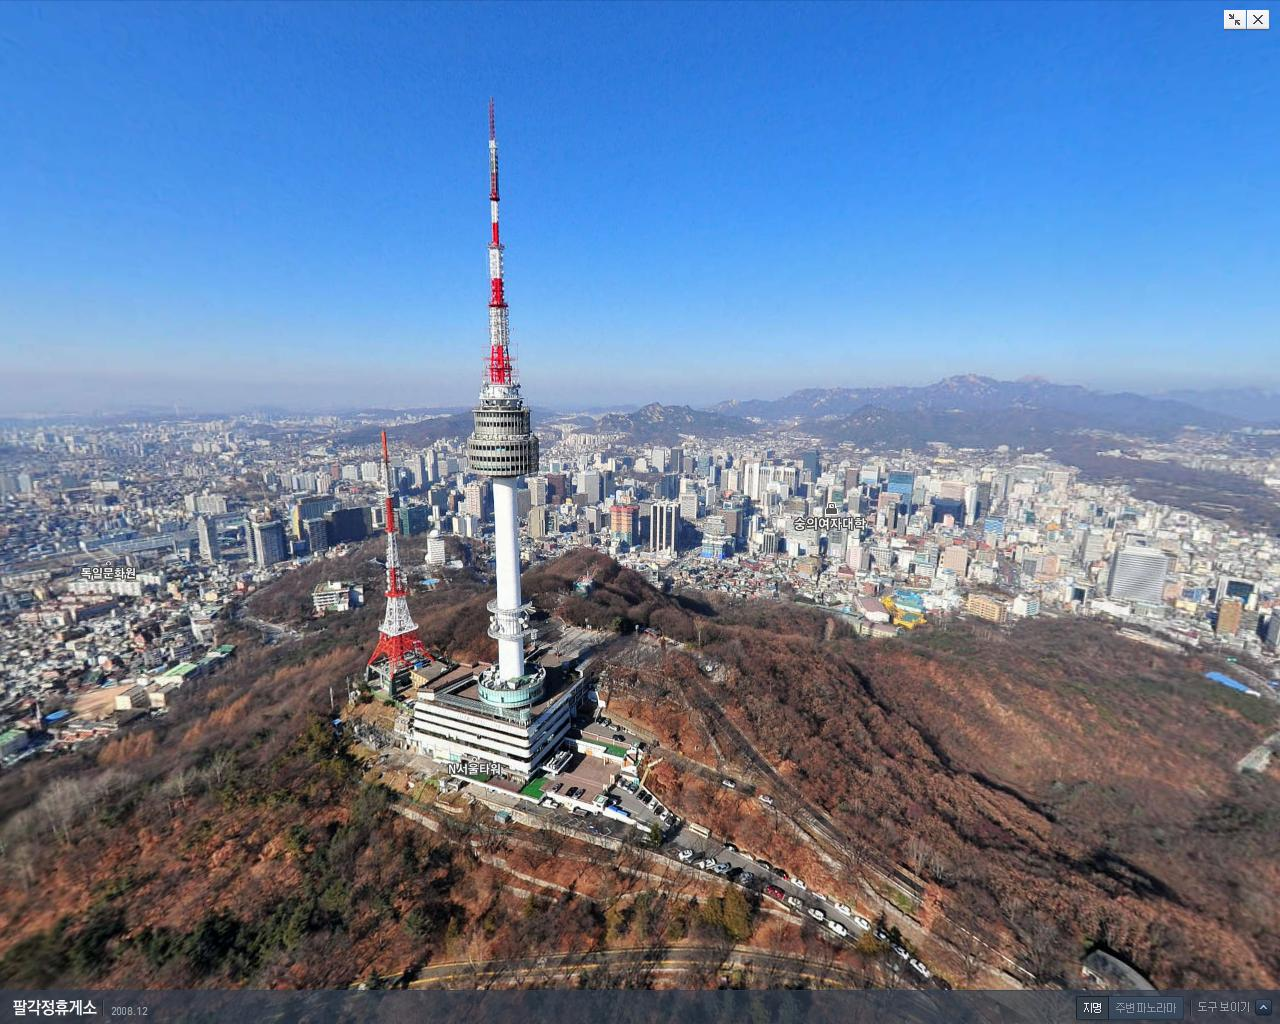 namsan park and seoul tower ticket price and review